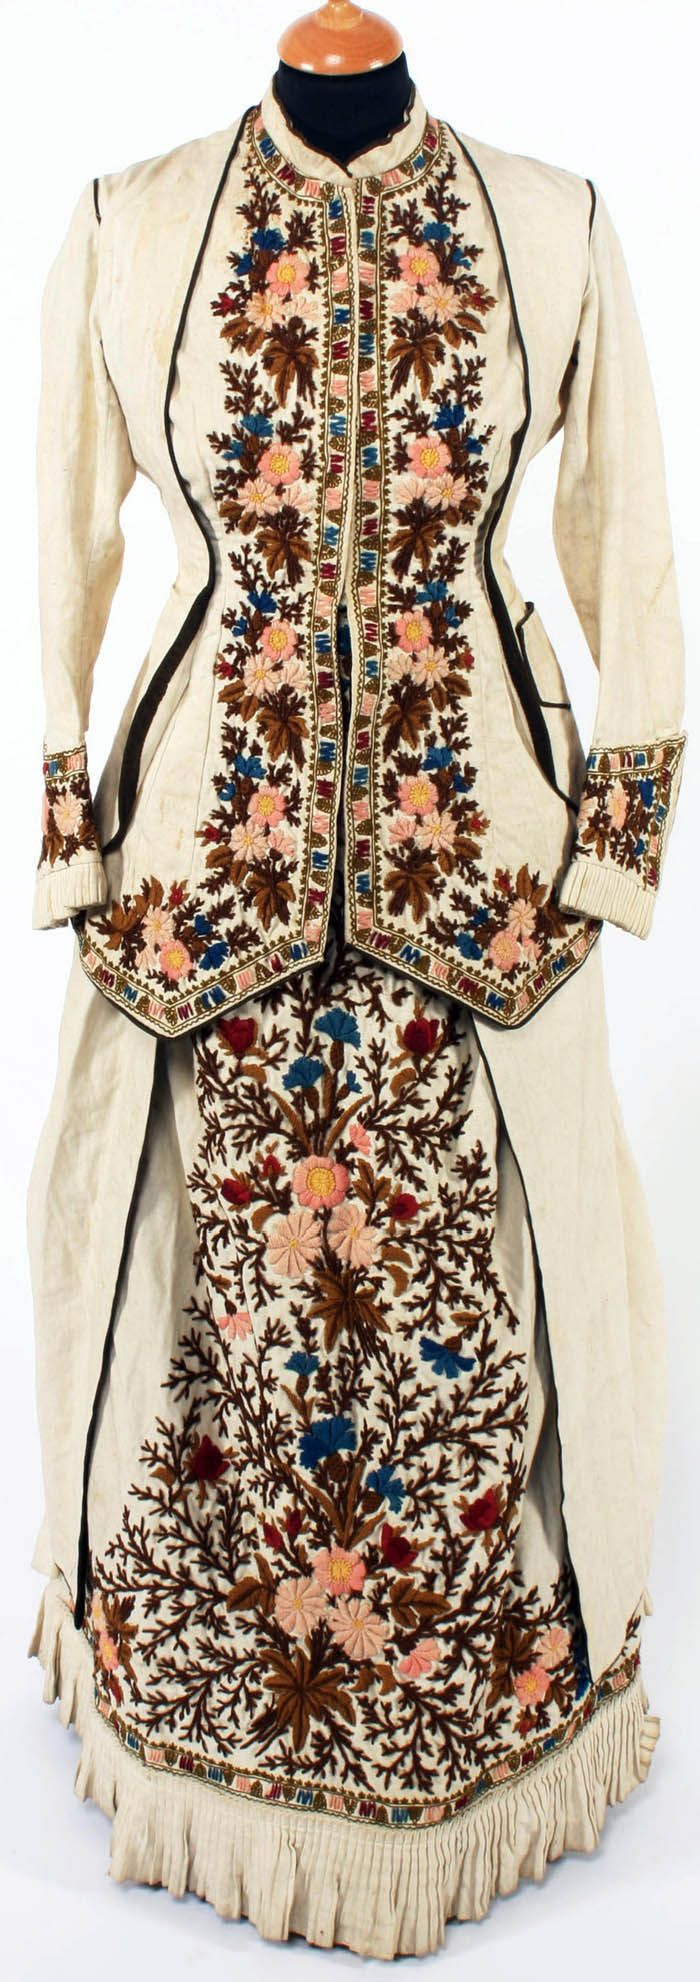 An 1880s embroidered day dress of cream cotton, with bustle skirt and long-sleeved bodice, decorated with dense floral woolwork in brown, blue, and pink down the center front and at the cuffs. Bonham's